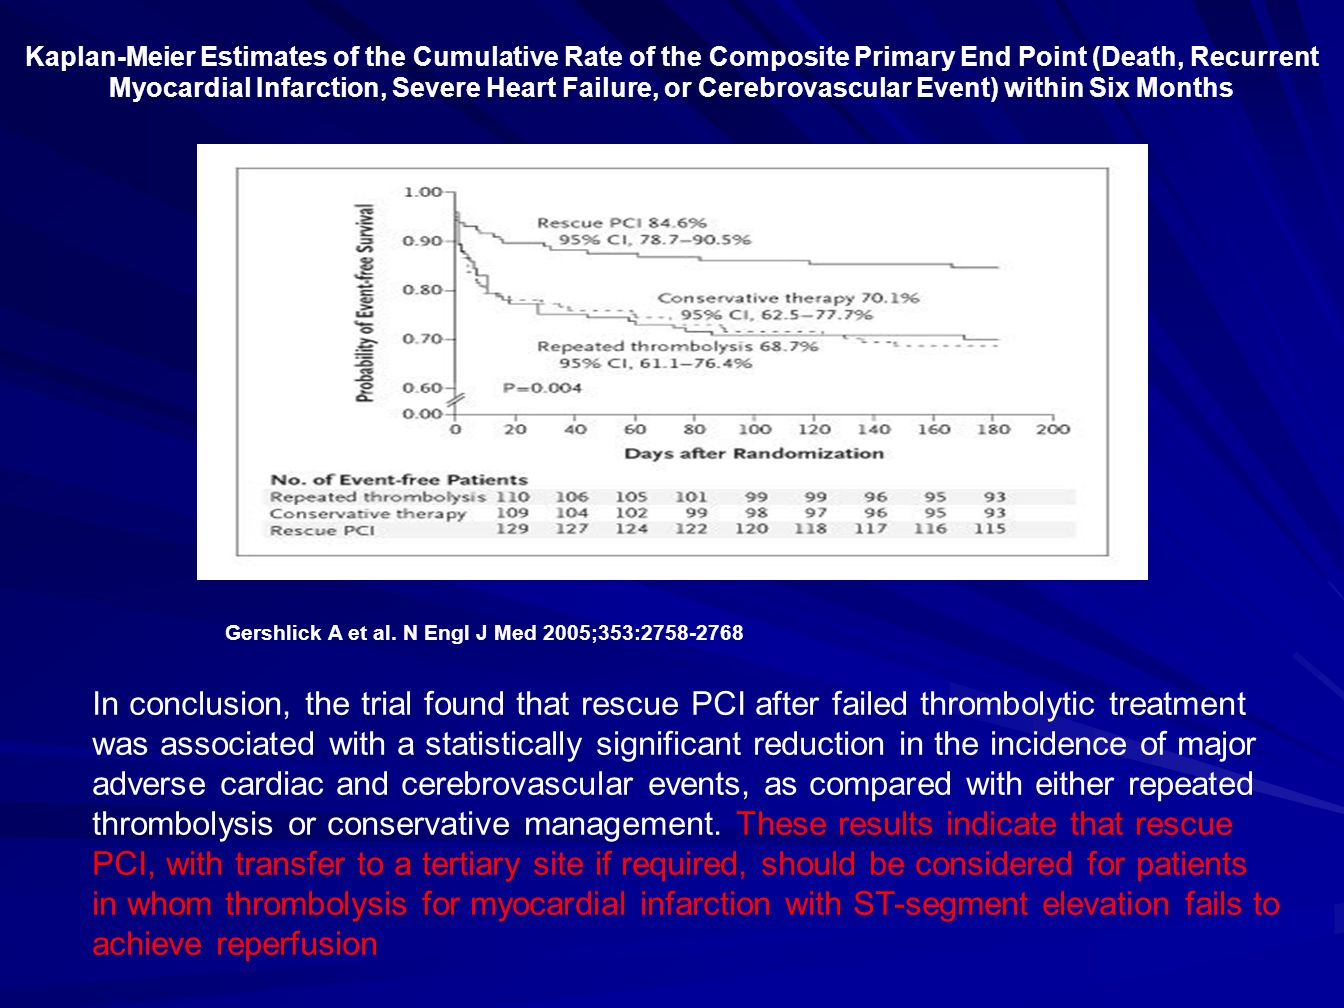 Kaplan-Meier Estimates of the Cumulative Rate of the Composite Primary End Point (Death, Recurrent Myocardial Infarction, Severe Heart Failure, or Cerebrovascular Event) within Six Months